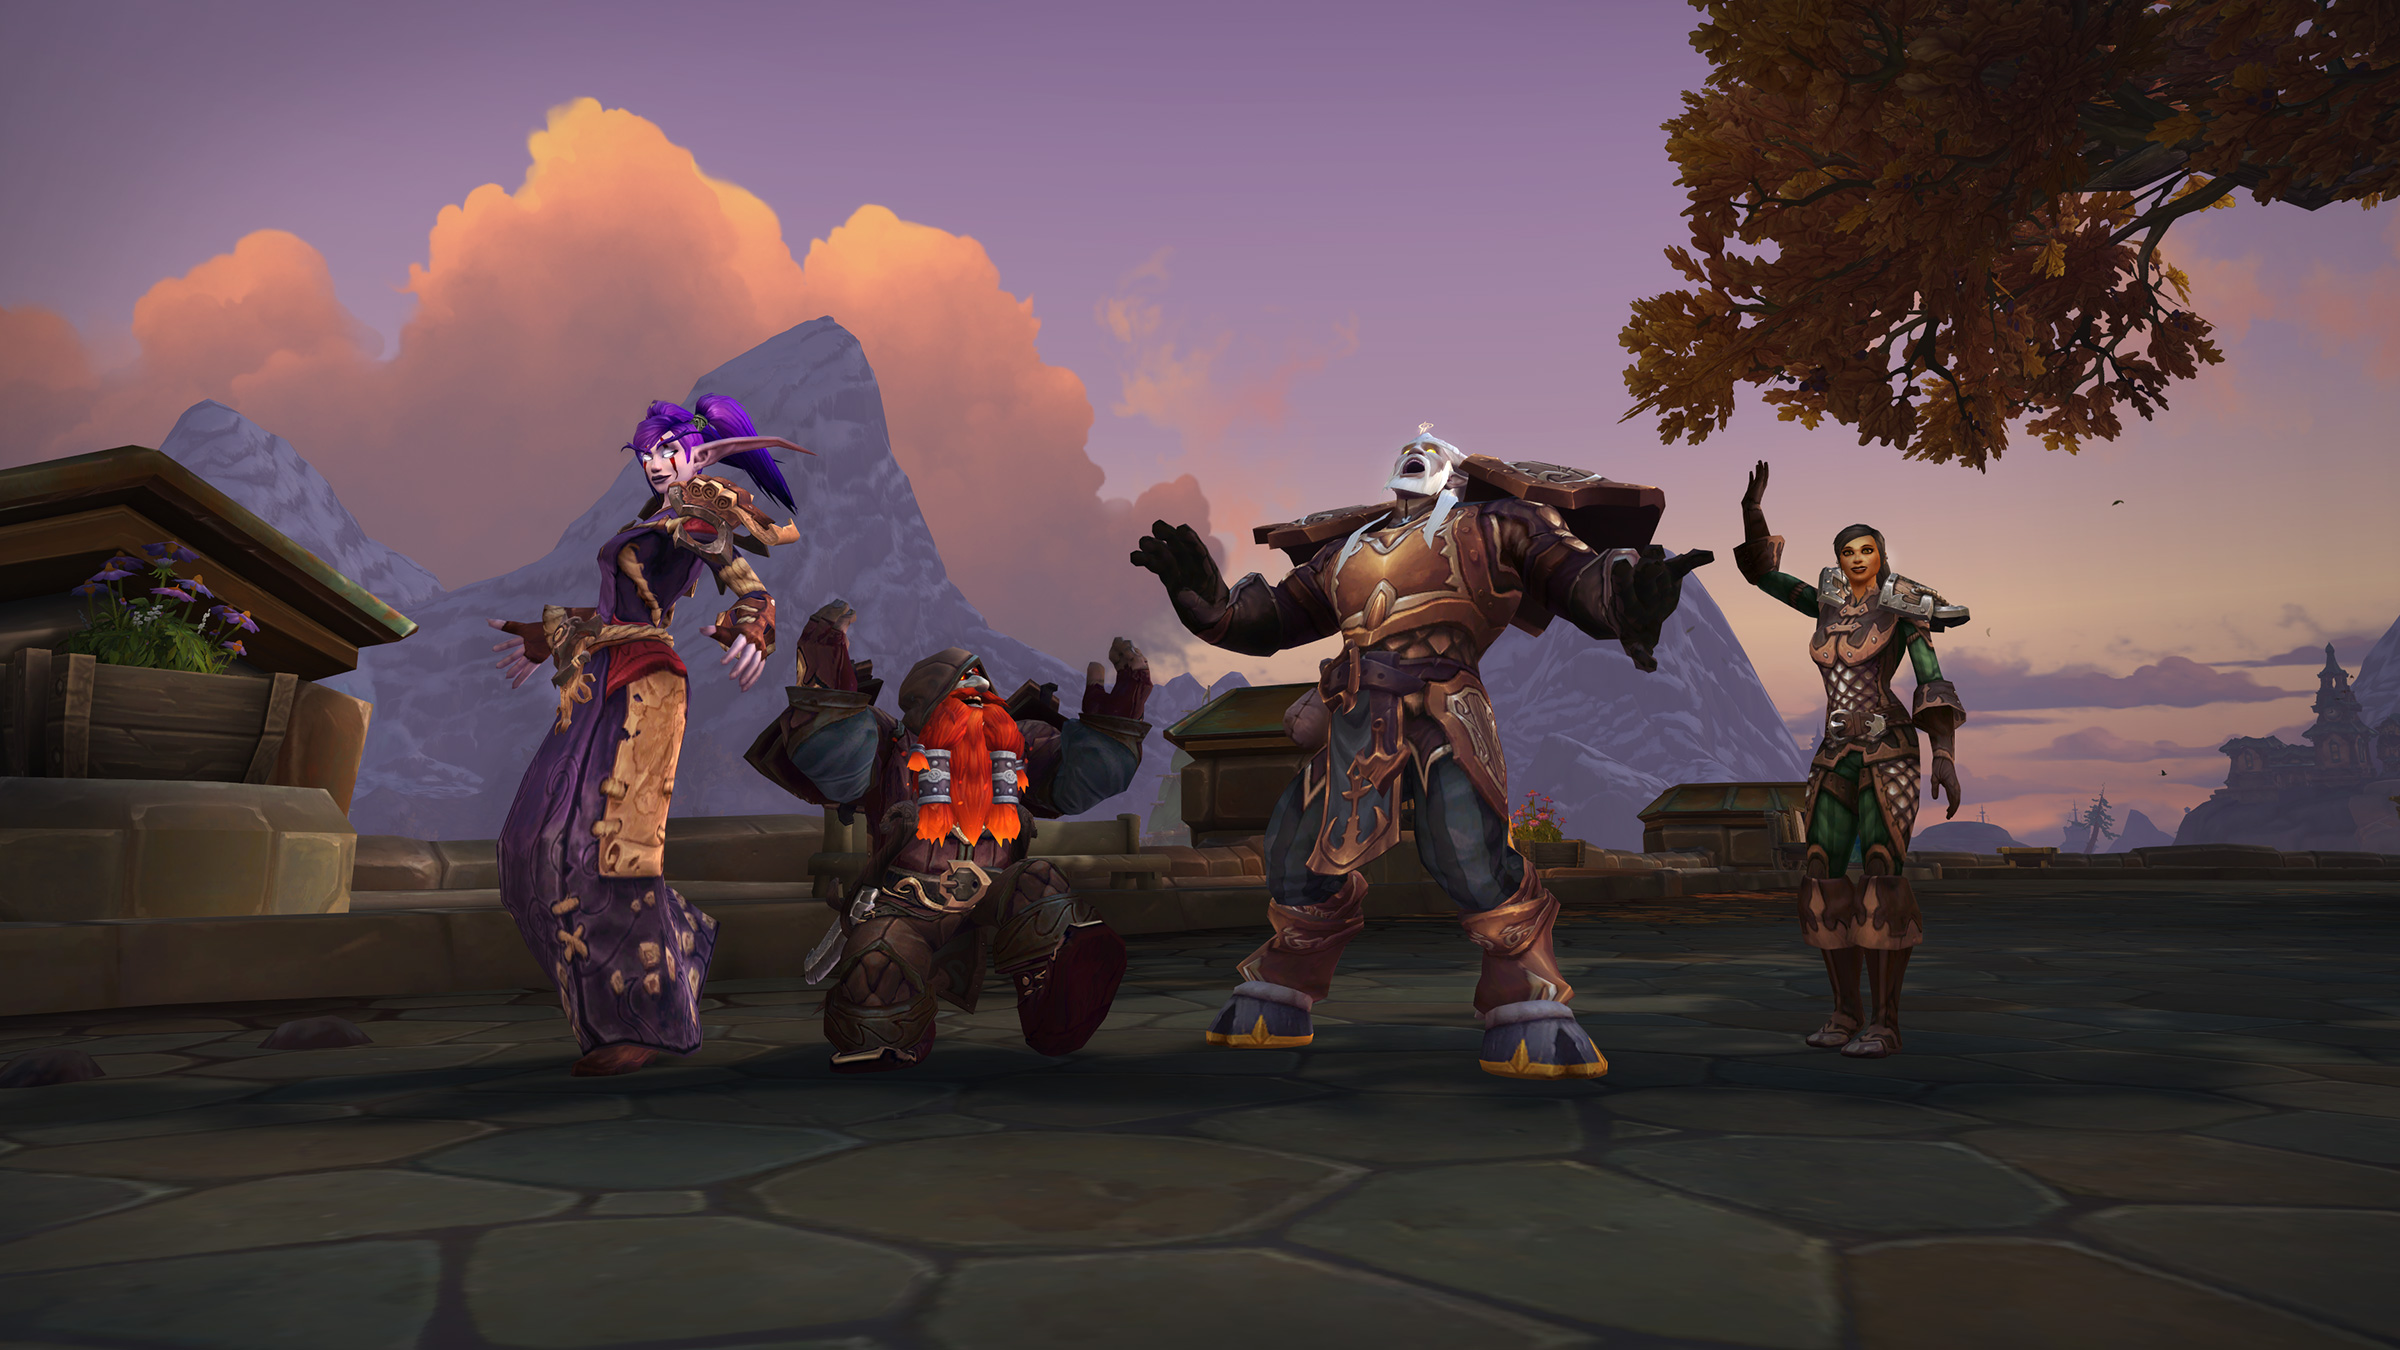 Battle for Azeroth Preview: World of Warcraft Communities